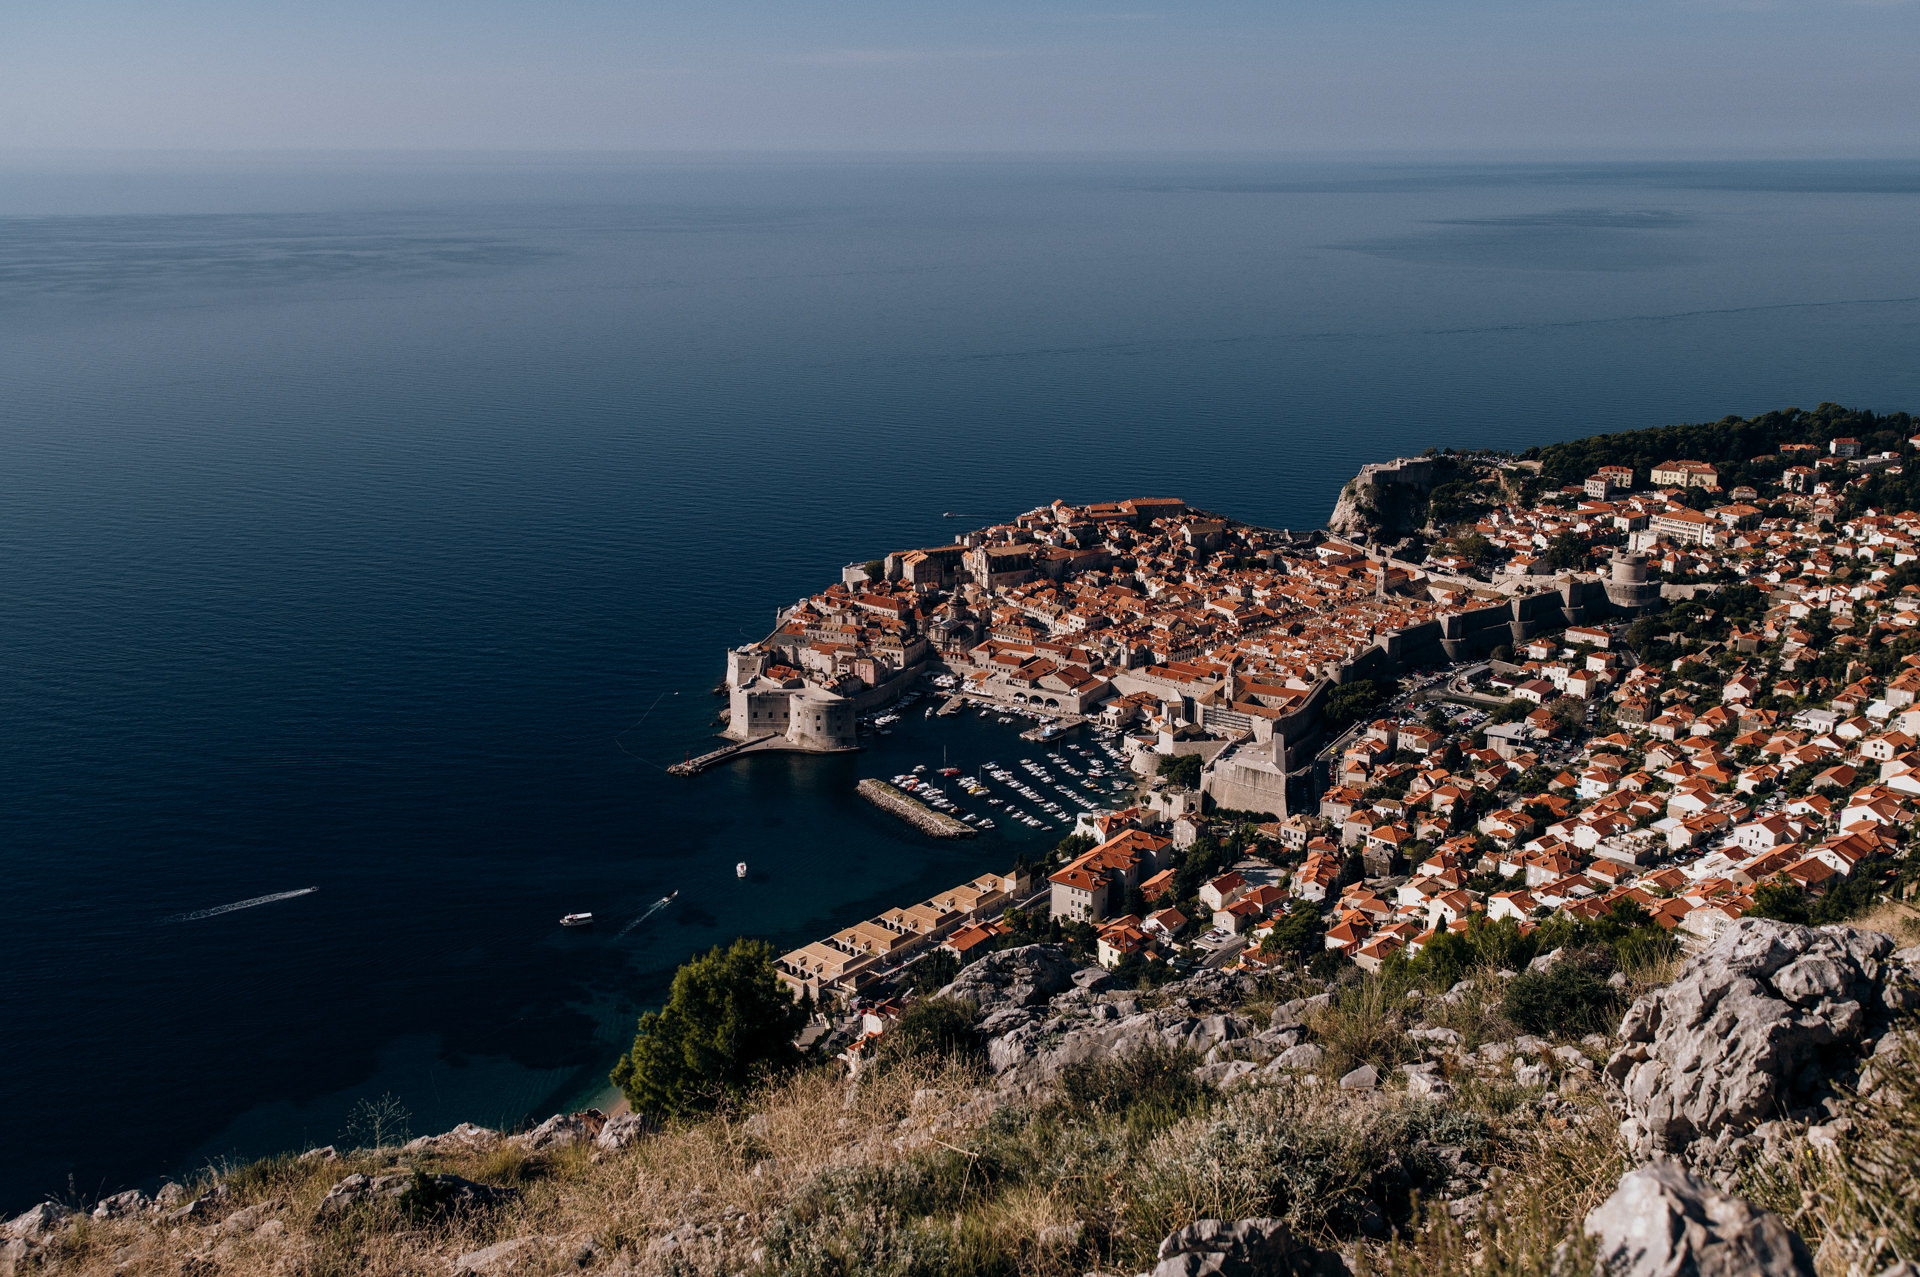 view from Srd to see Dubrovnik Croatia skyline